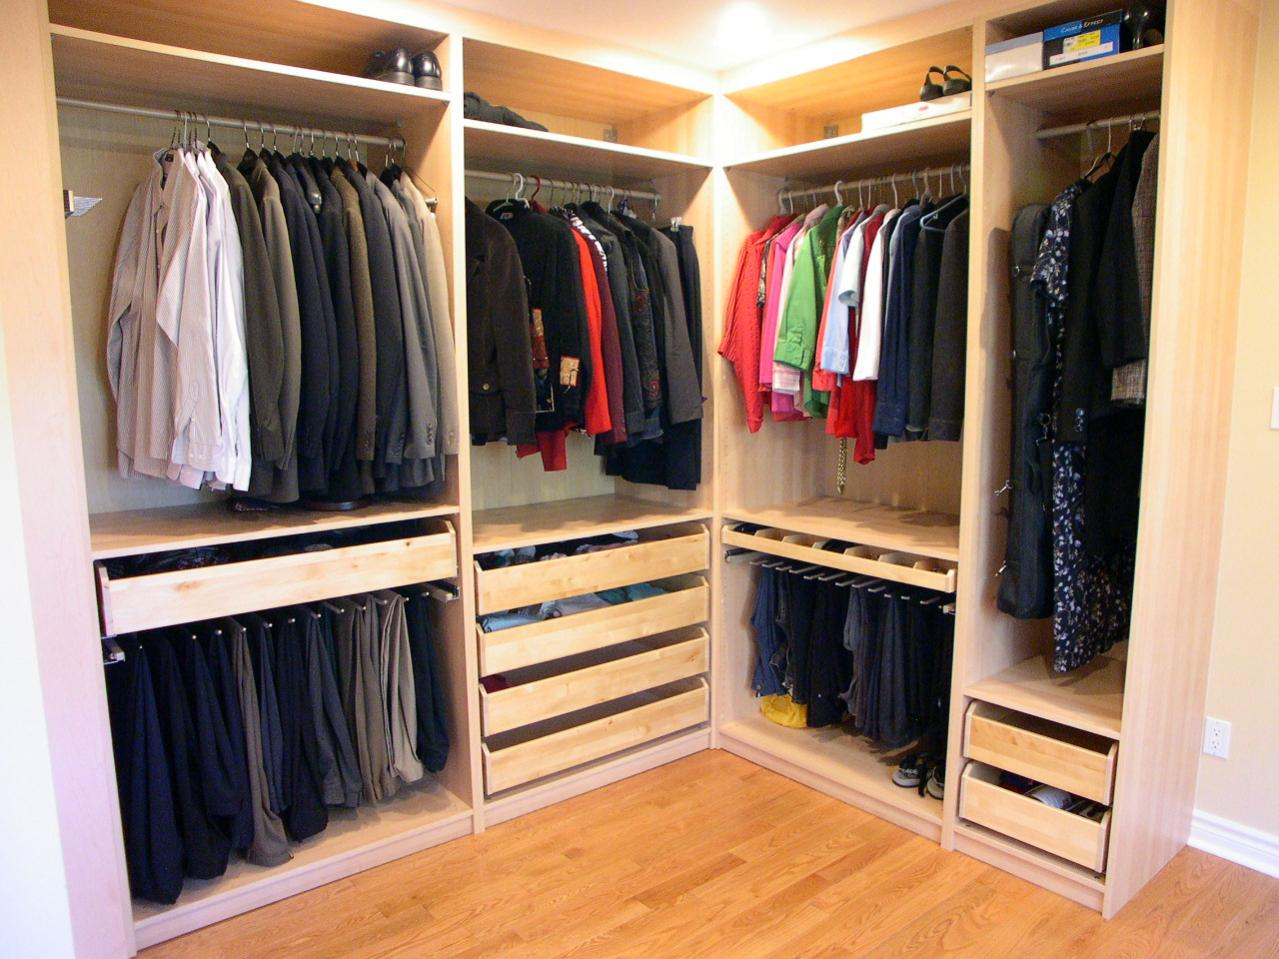 Easy Closets Has Anyone Had Experience With Them Remodeling